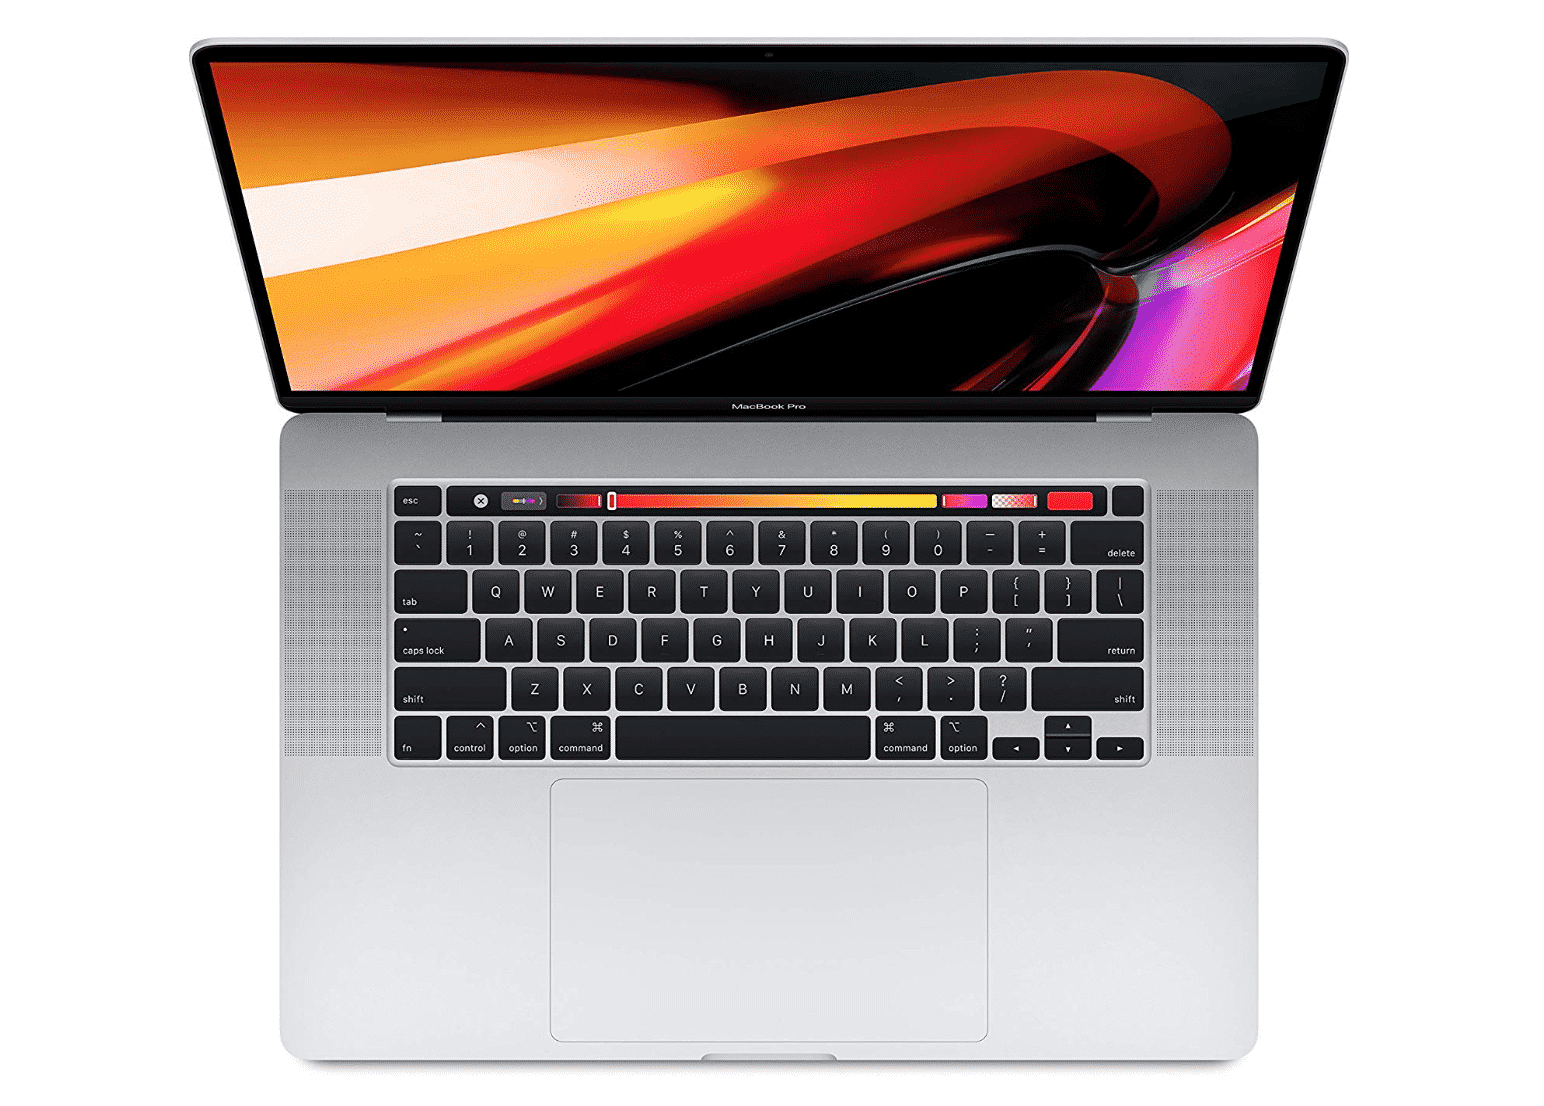 Take $300 Off When You Buy the 16 Inch MacBook Pro